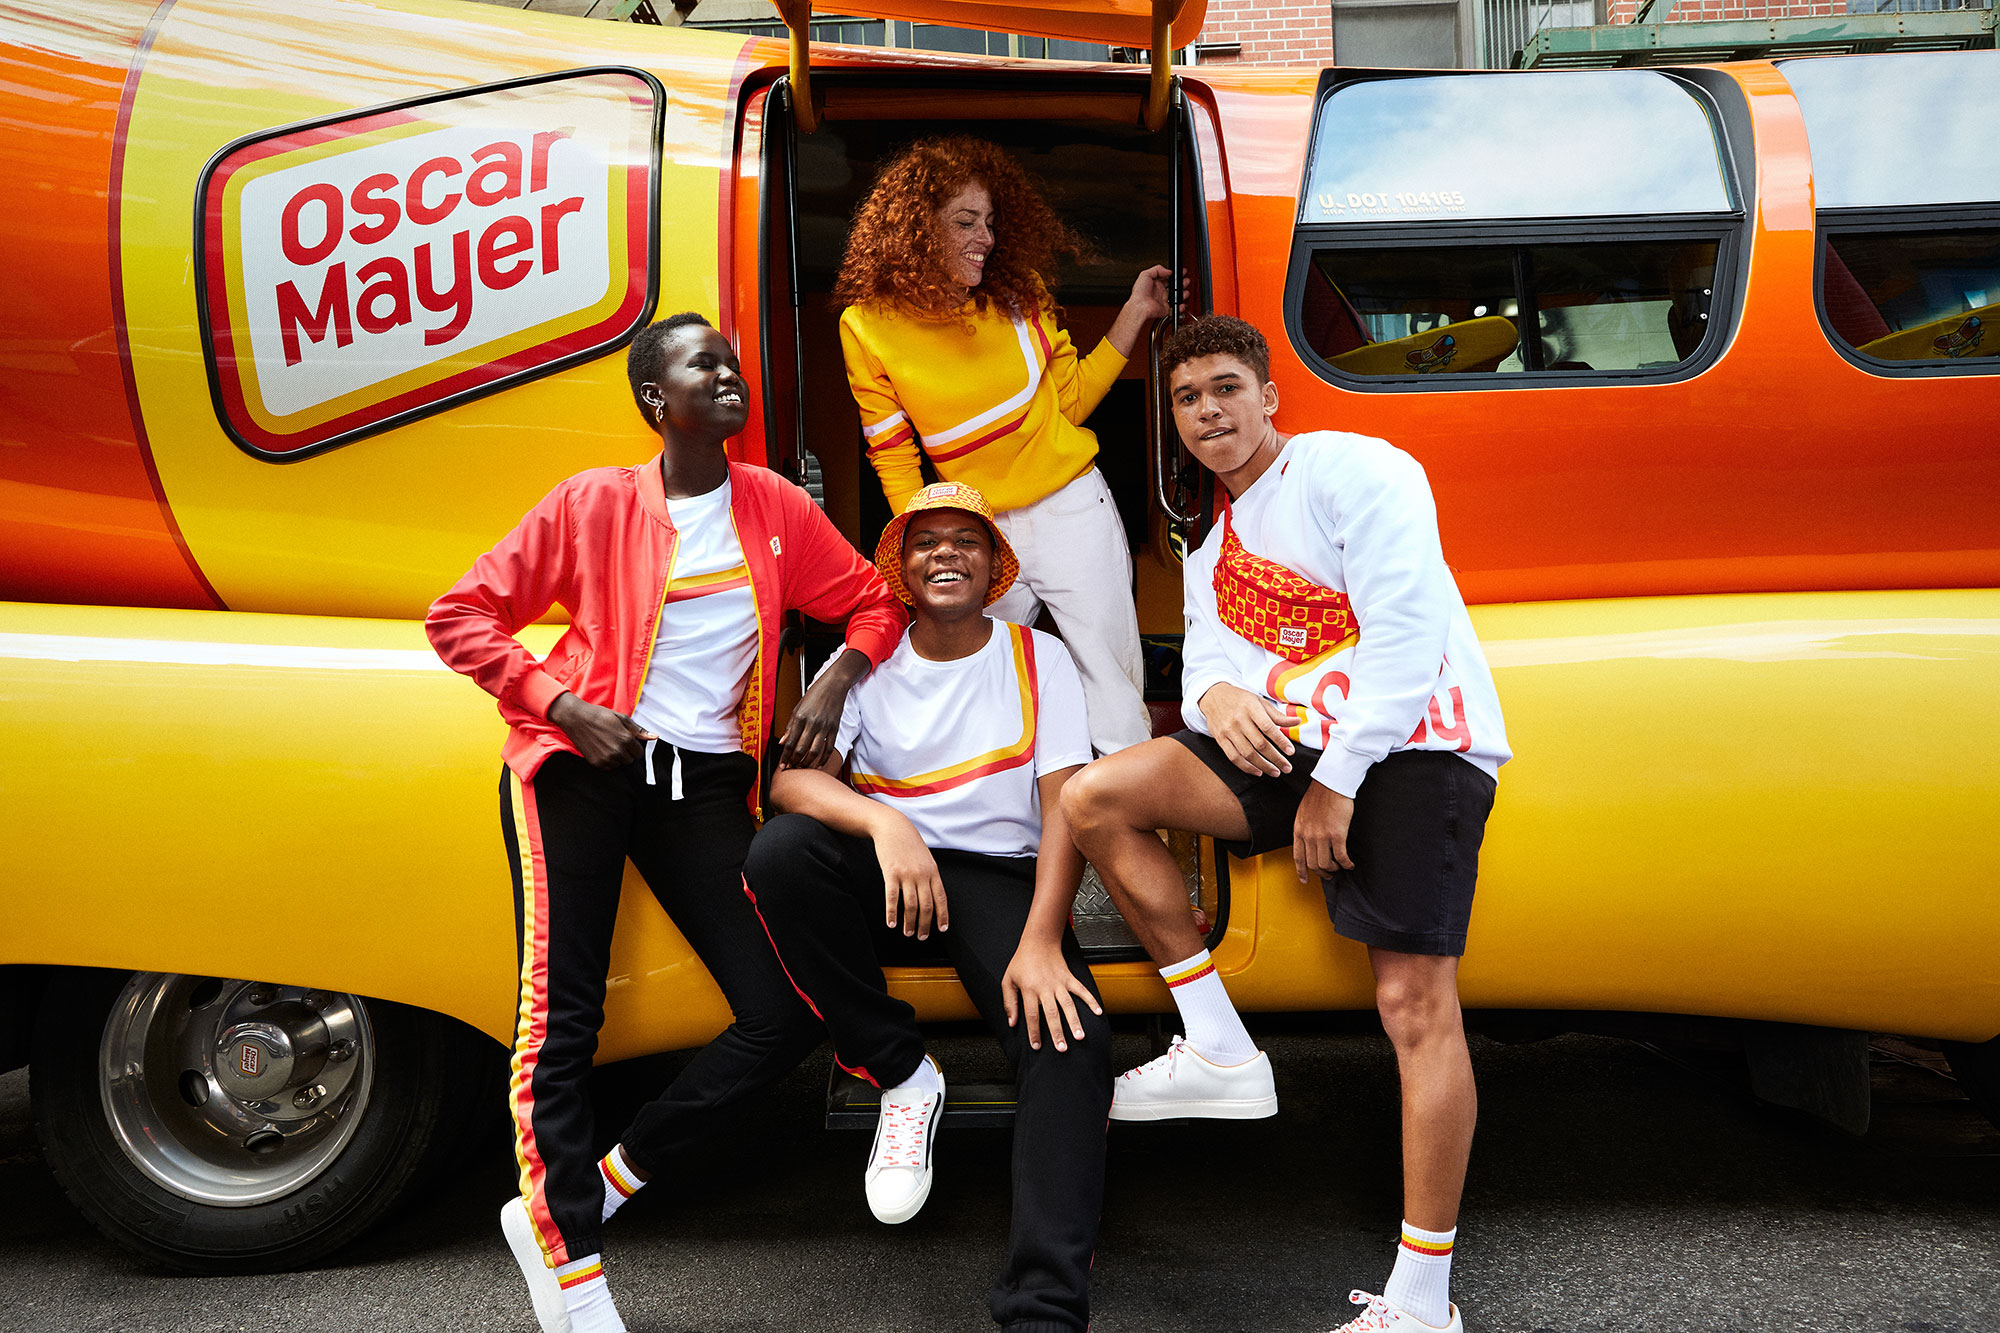 Models wear the Oscar Mayer Street Meat capsule collection outside of an Oscar Meyer hot dog bus